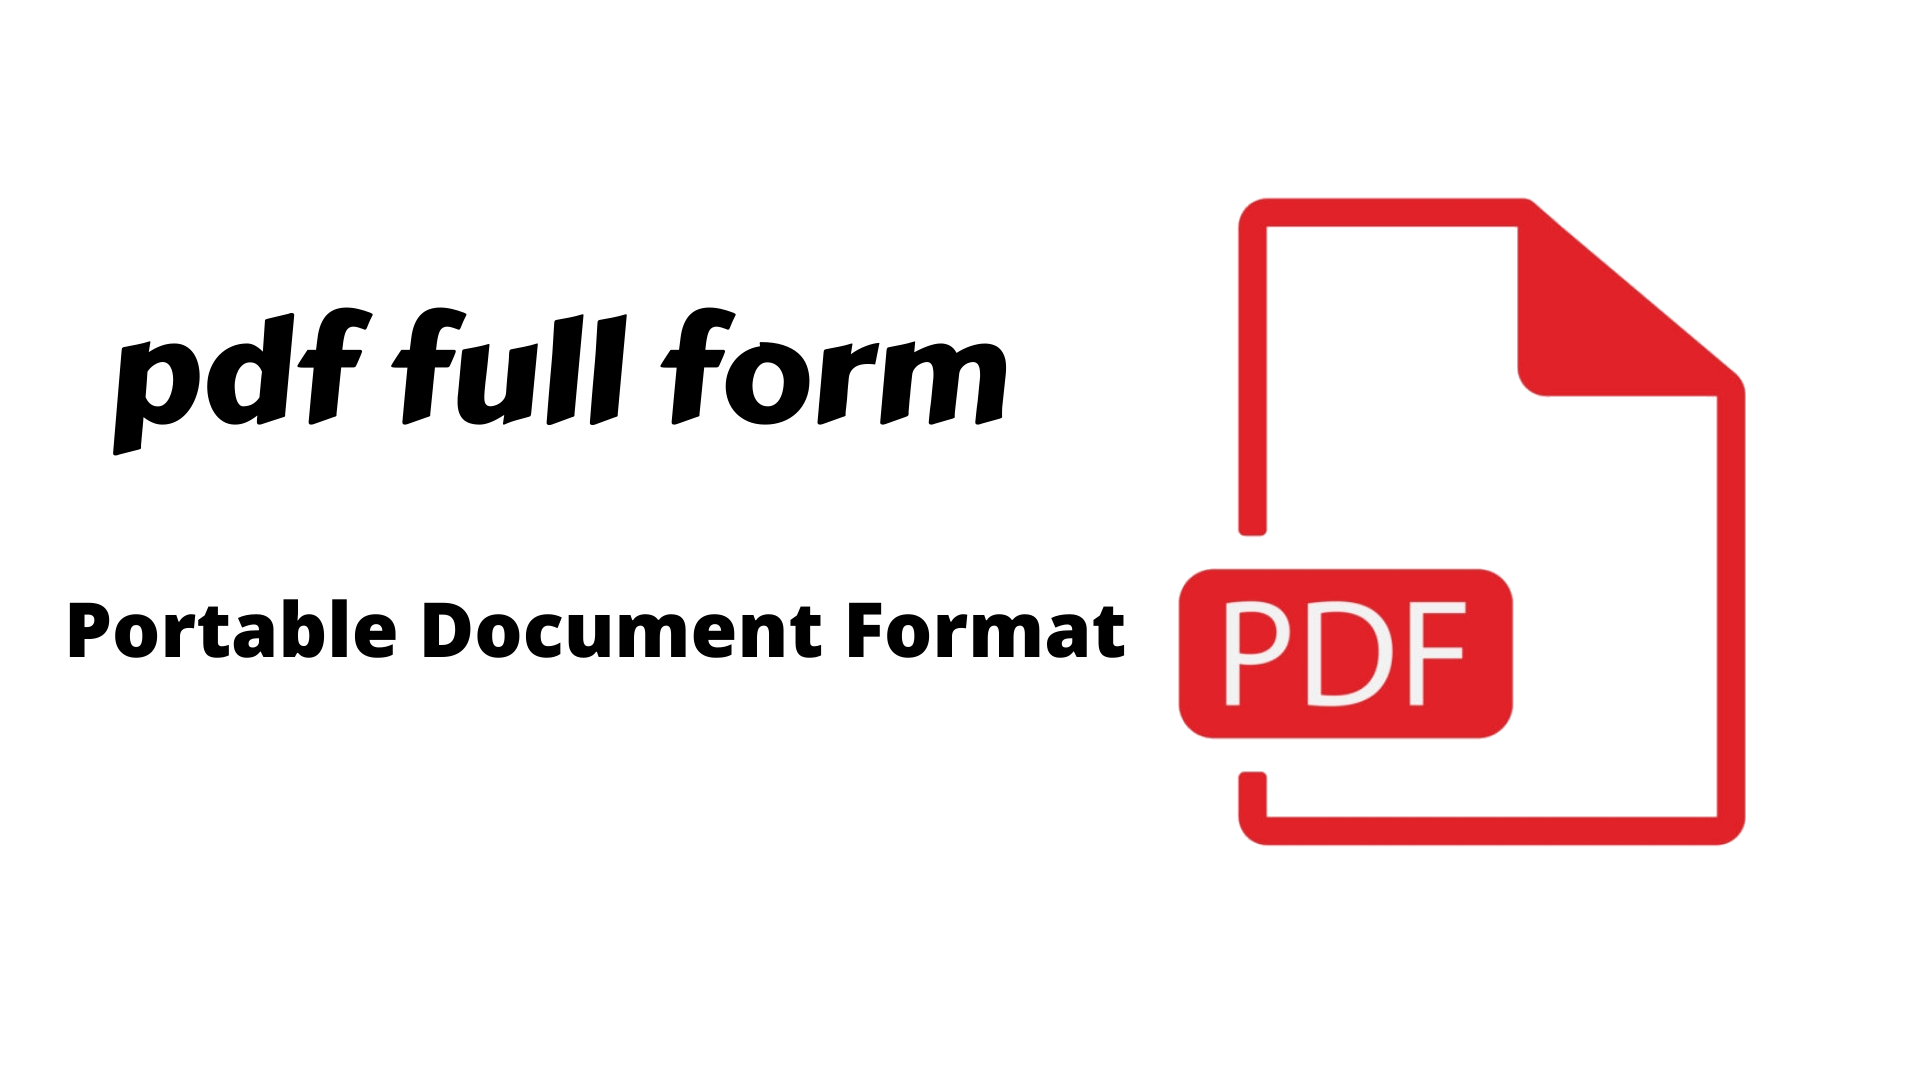 PDF Full Form, What is full form of pdf?